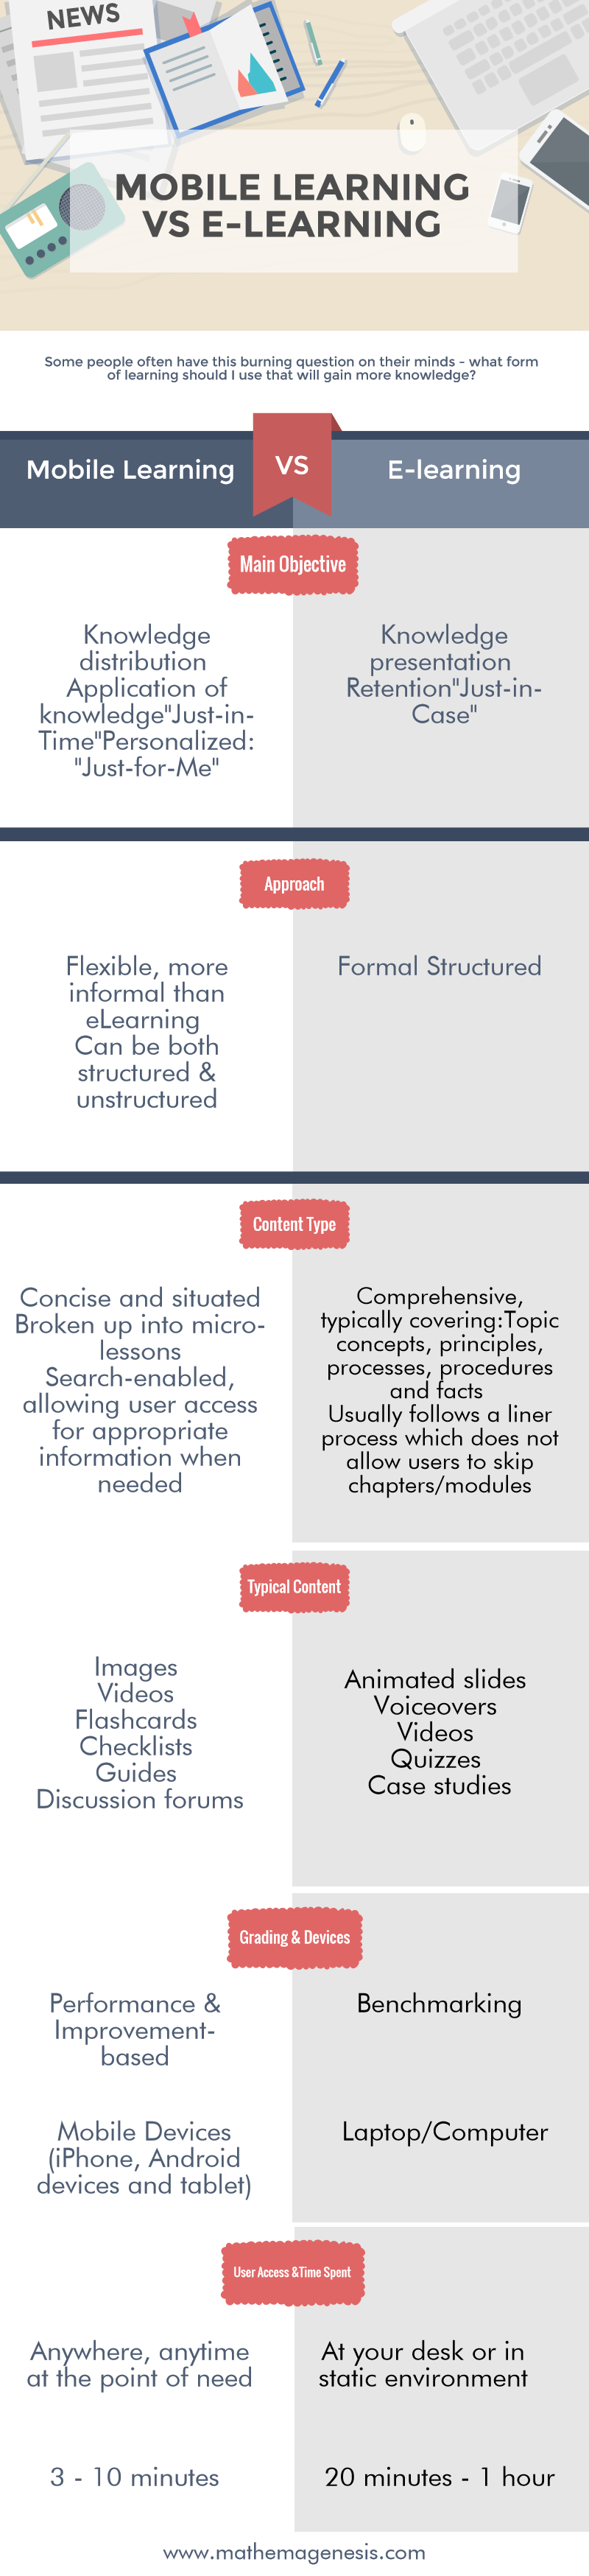 mobile-learning-vs-e-learning-mathemagenesis-com